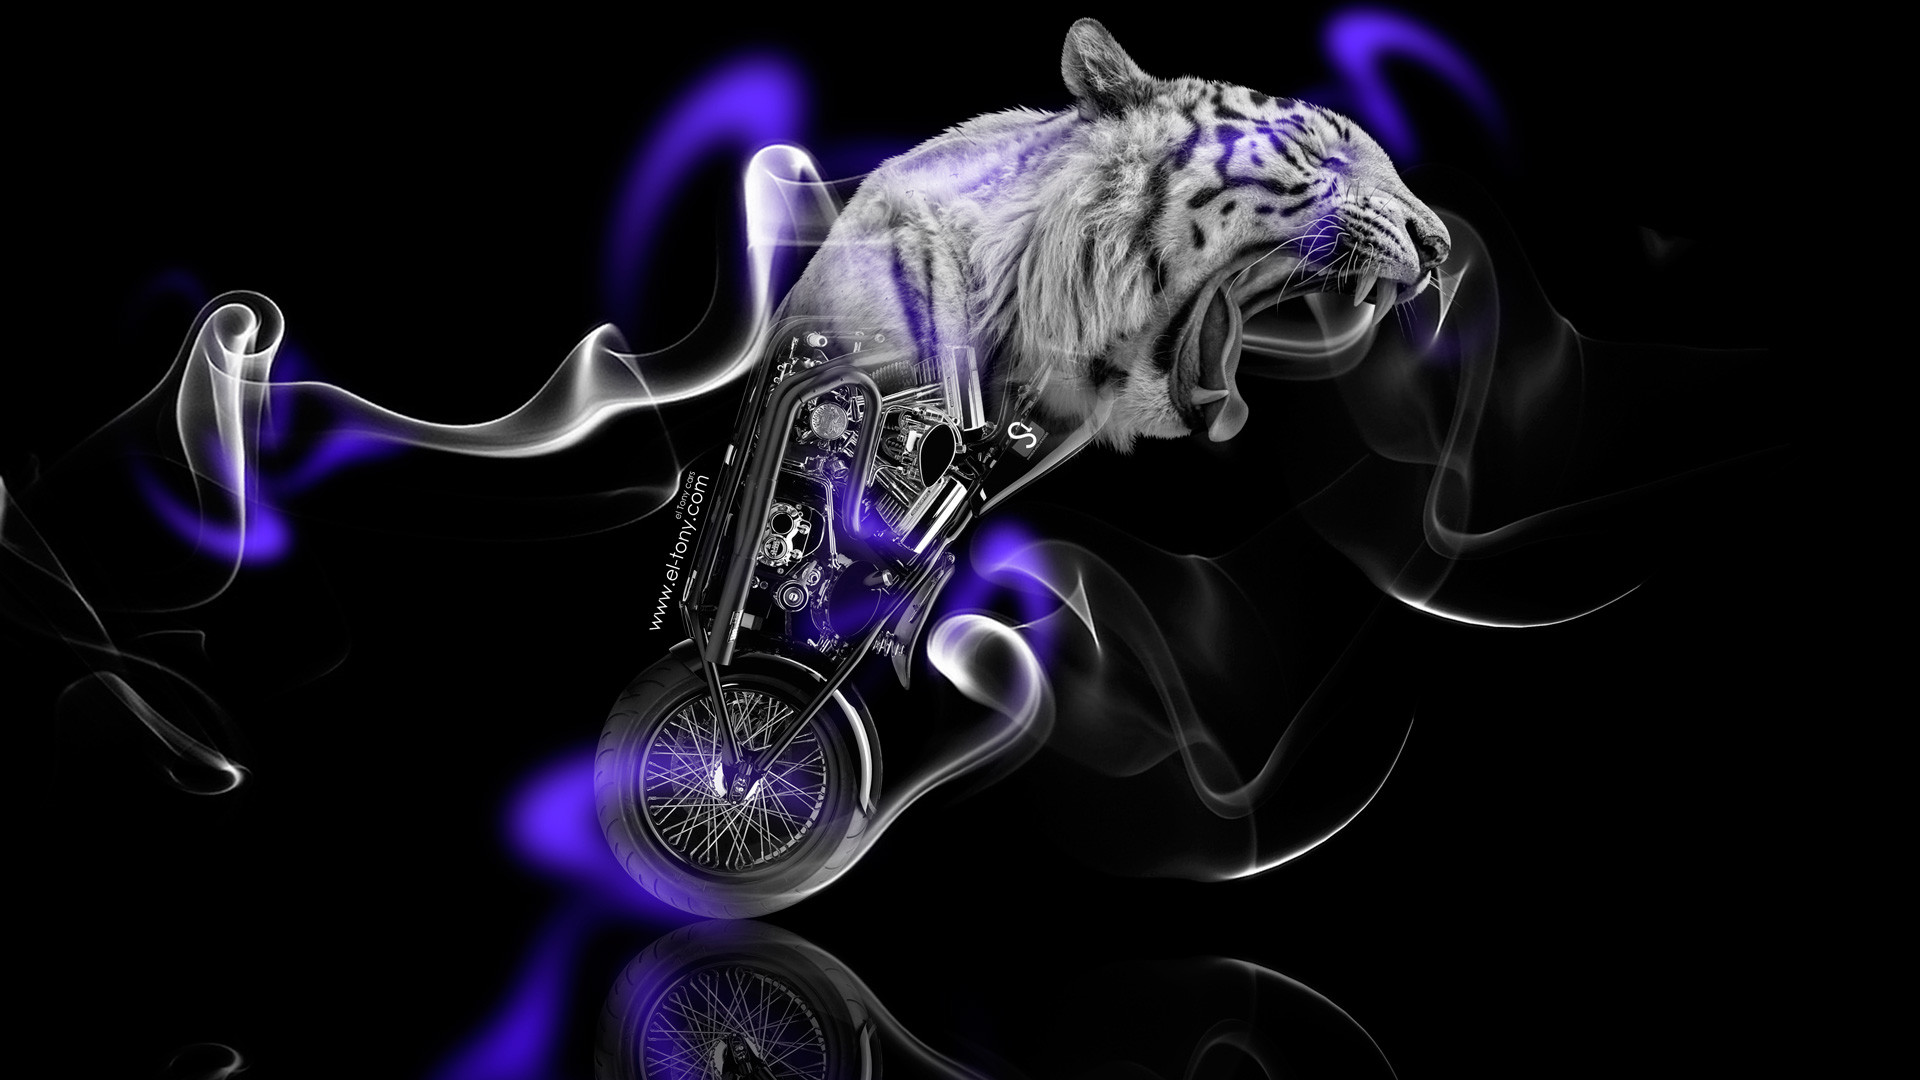 Res: 1920x1080, Fantasy-Moto-Tiger-Smoke-Bike-2014-Violet-Neon-